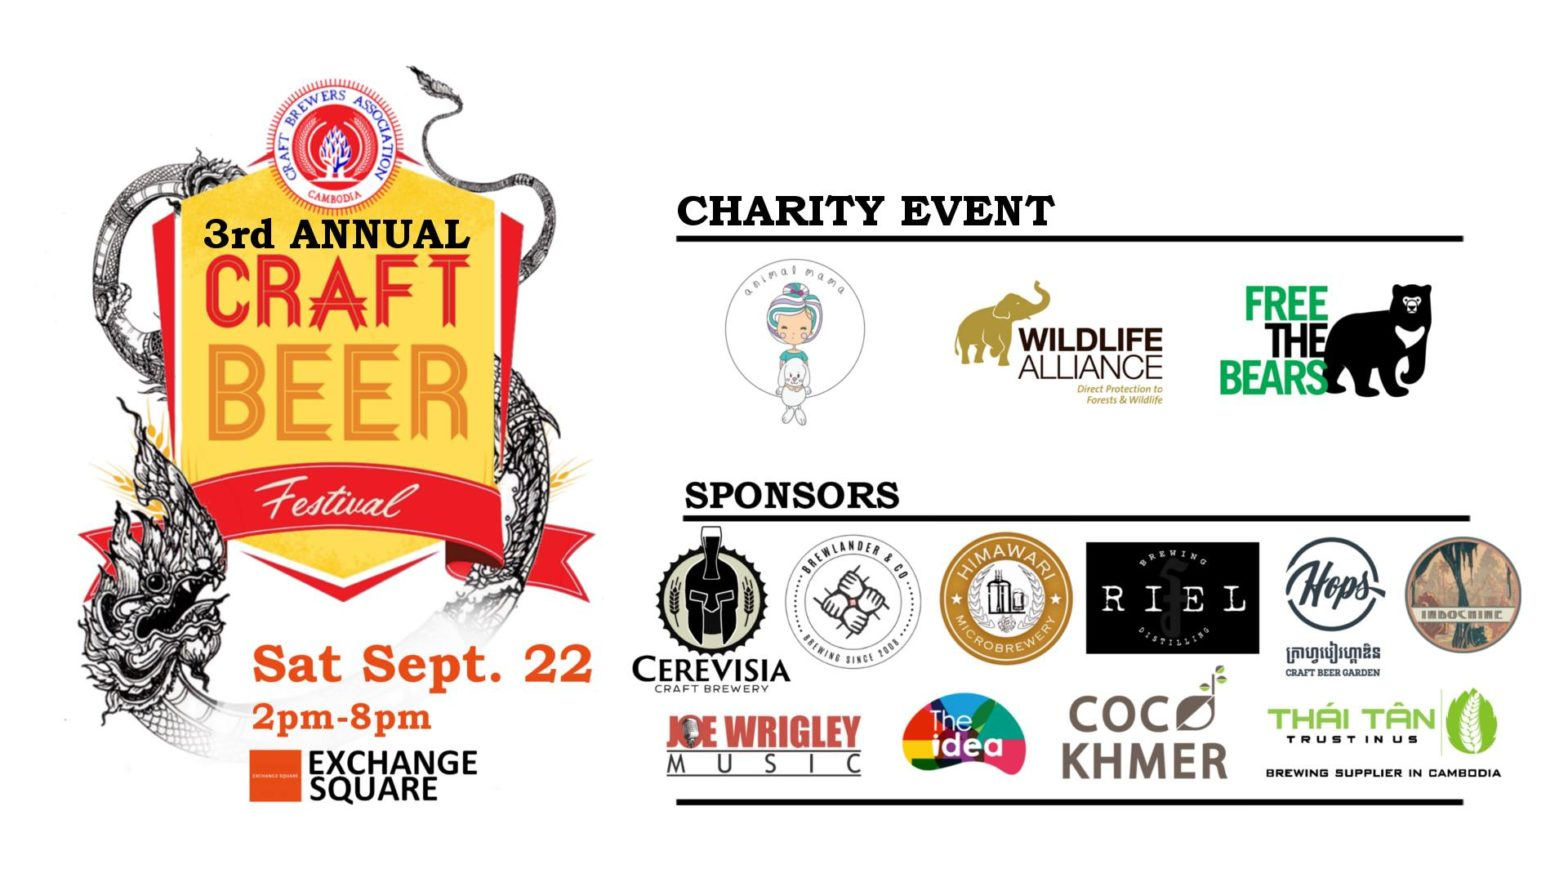 3rd Annual Craft Brewers Association Charity Event